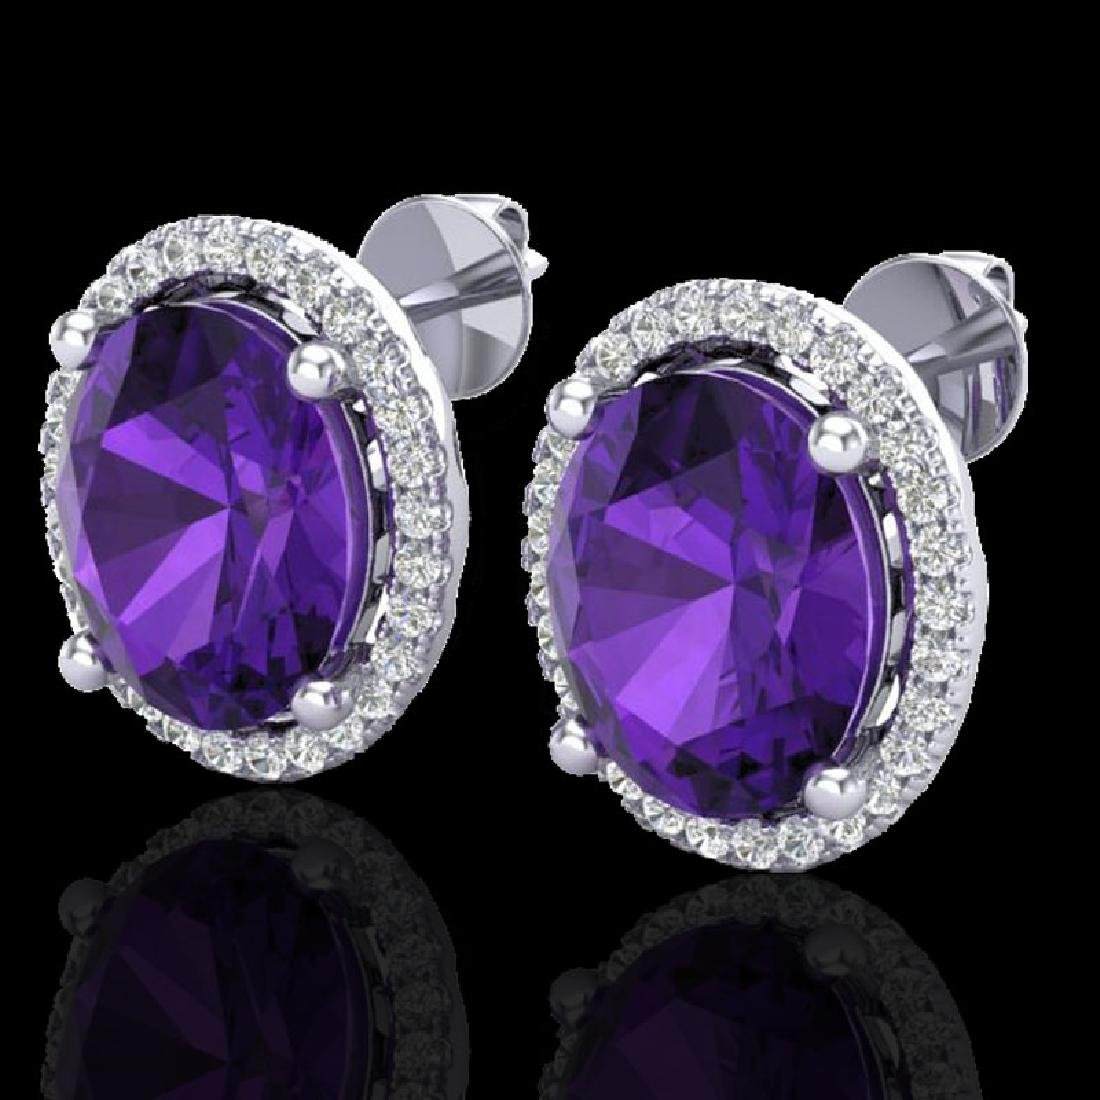 5 CTW Amethyst & Micro Pave VS/SI Diamond Earrings Halo